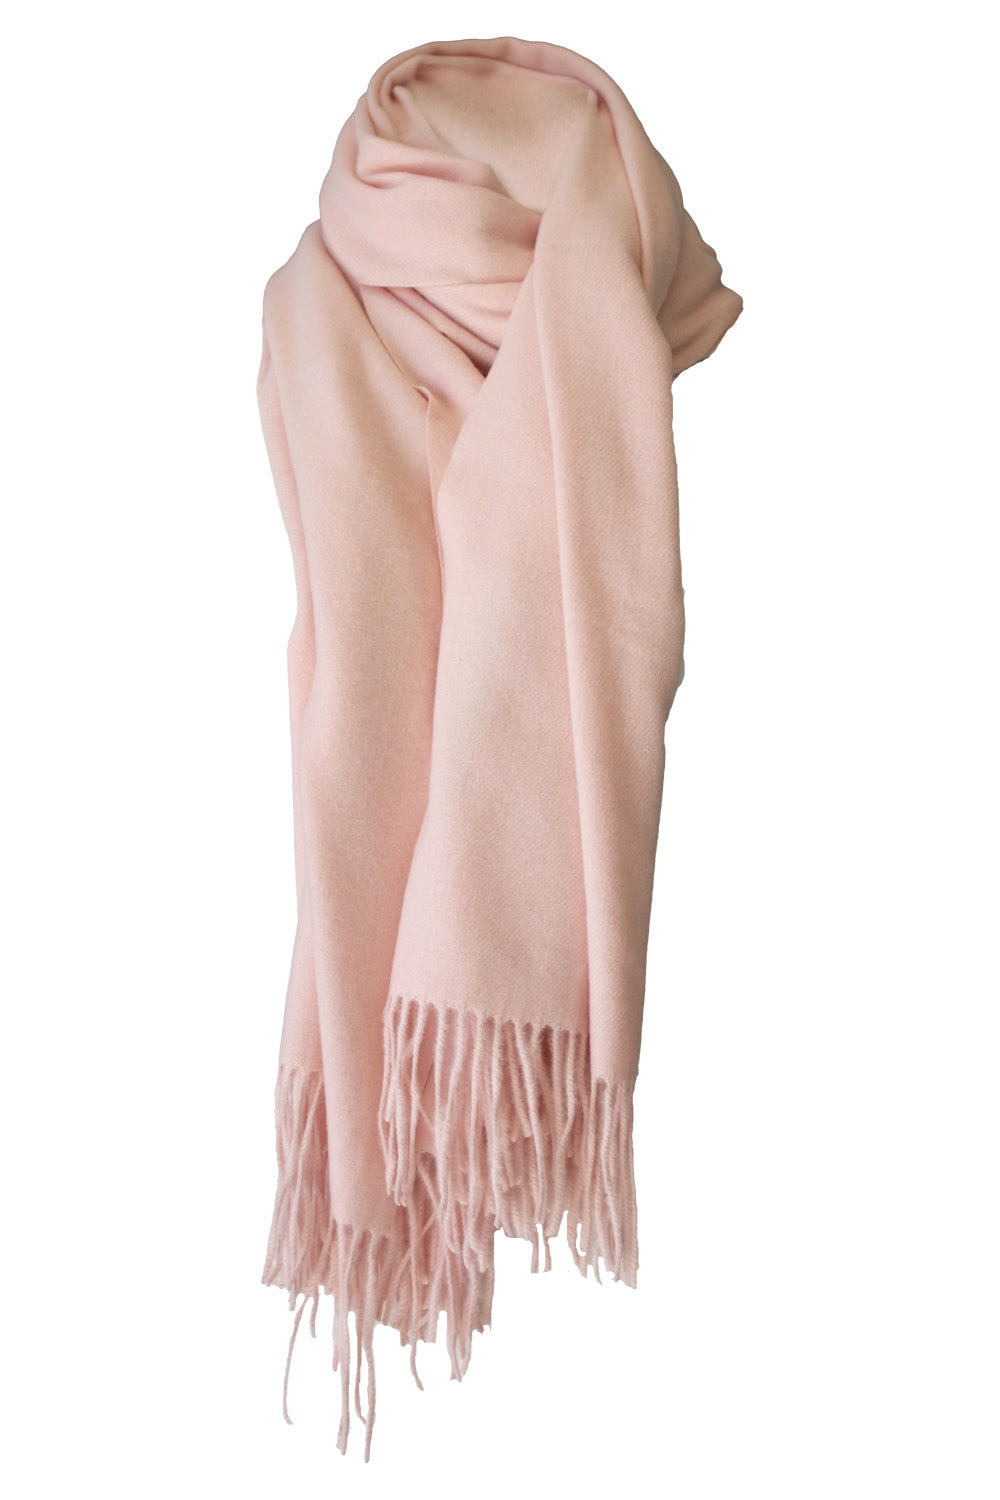 Pink Scarf, Accessory, Winter Fashion, Winter Scarf